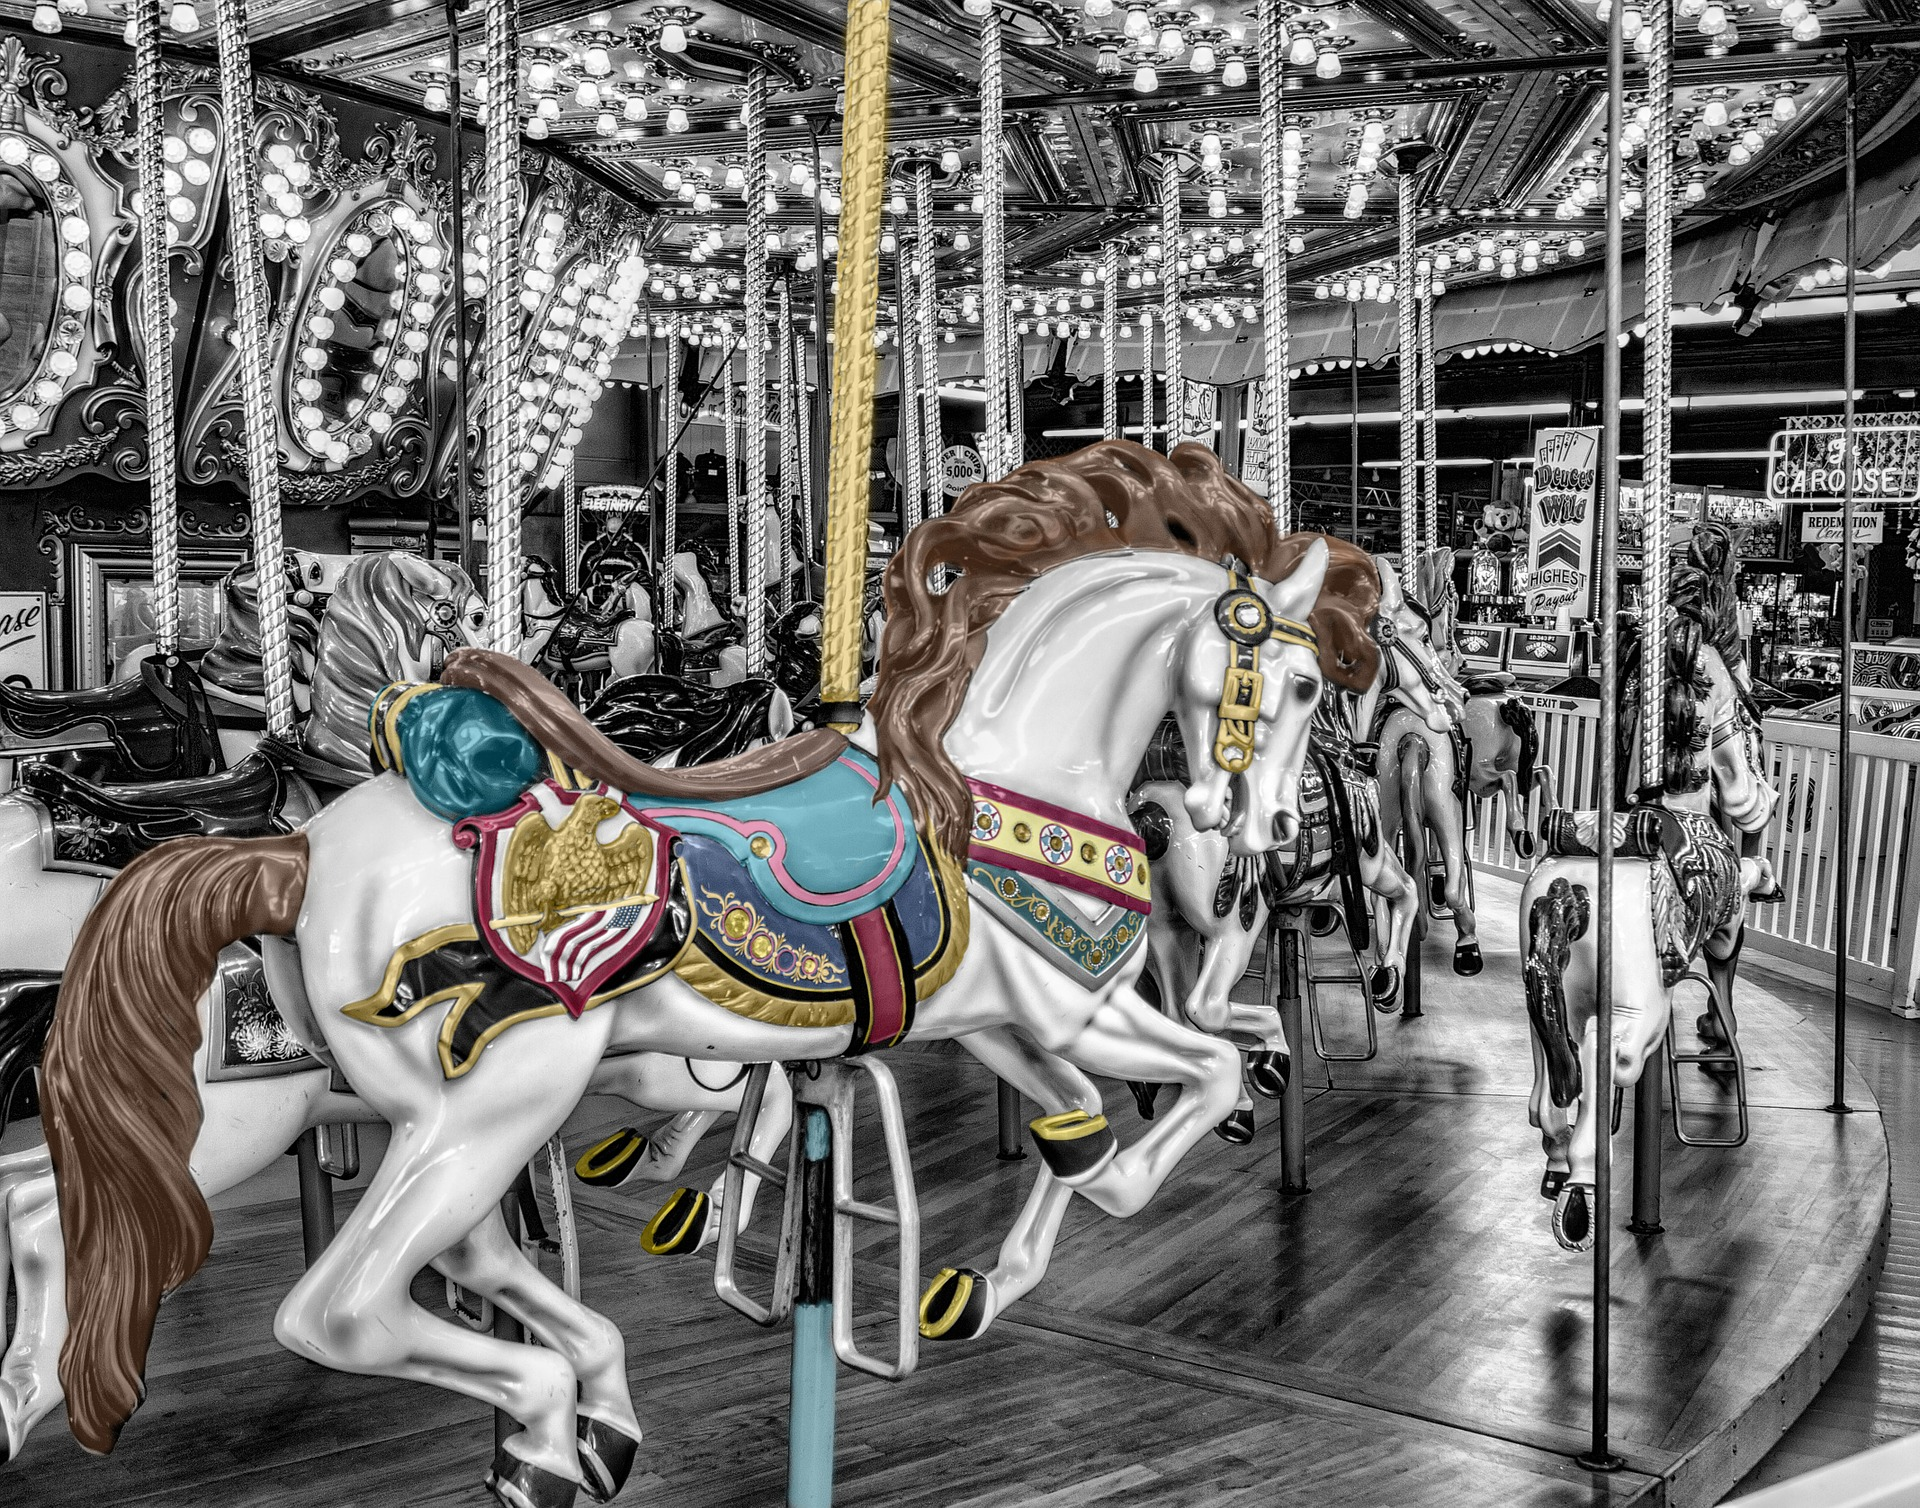 The Merry Go Round of Selling